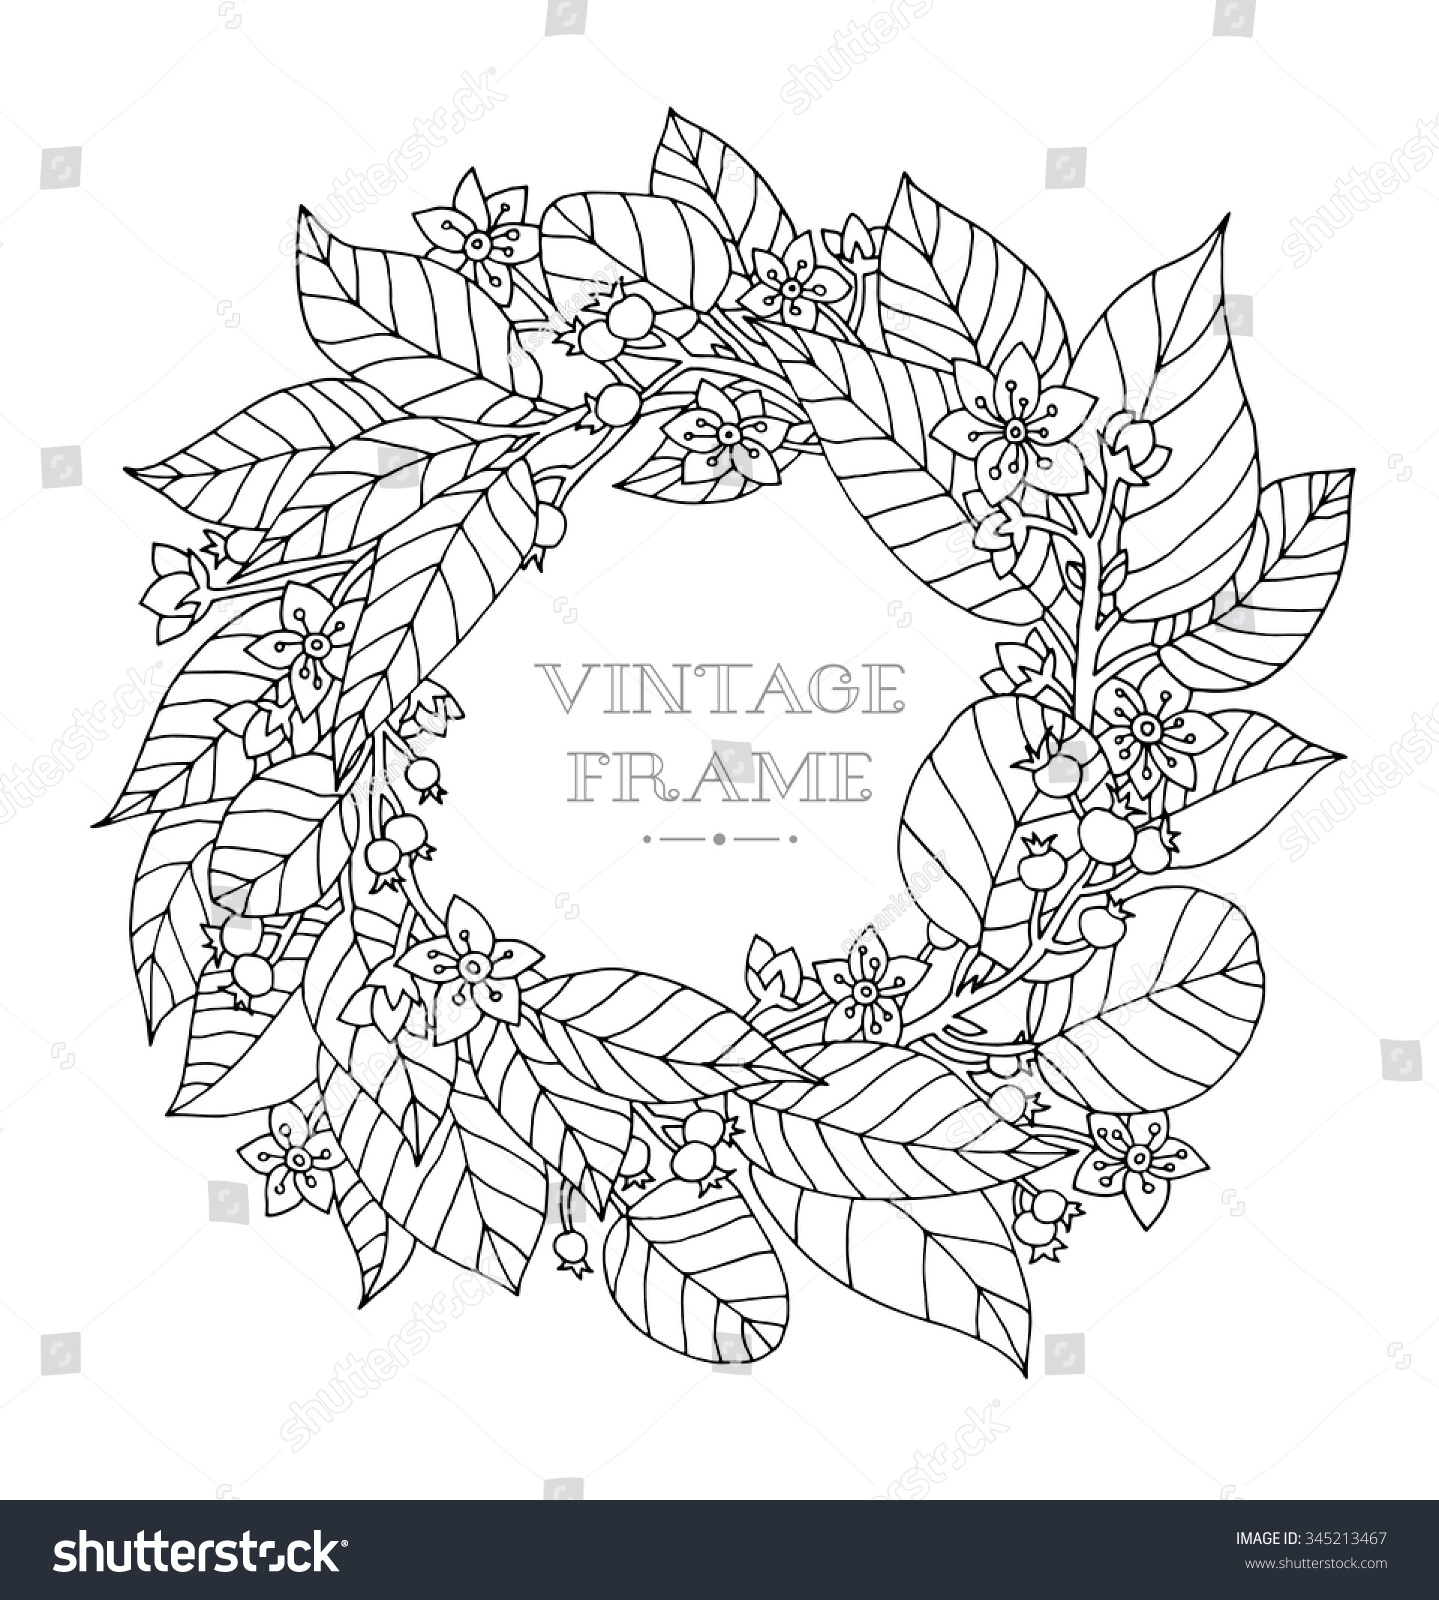 forest flowers wreath wild berries vector coloring book page for adult hand - Coloring Book Flowers